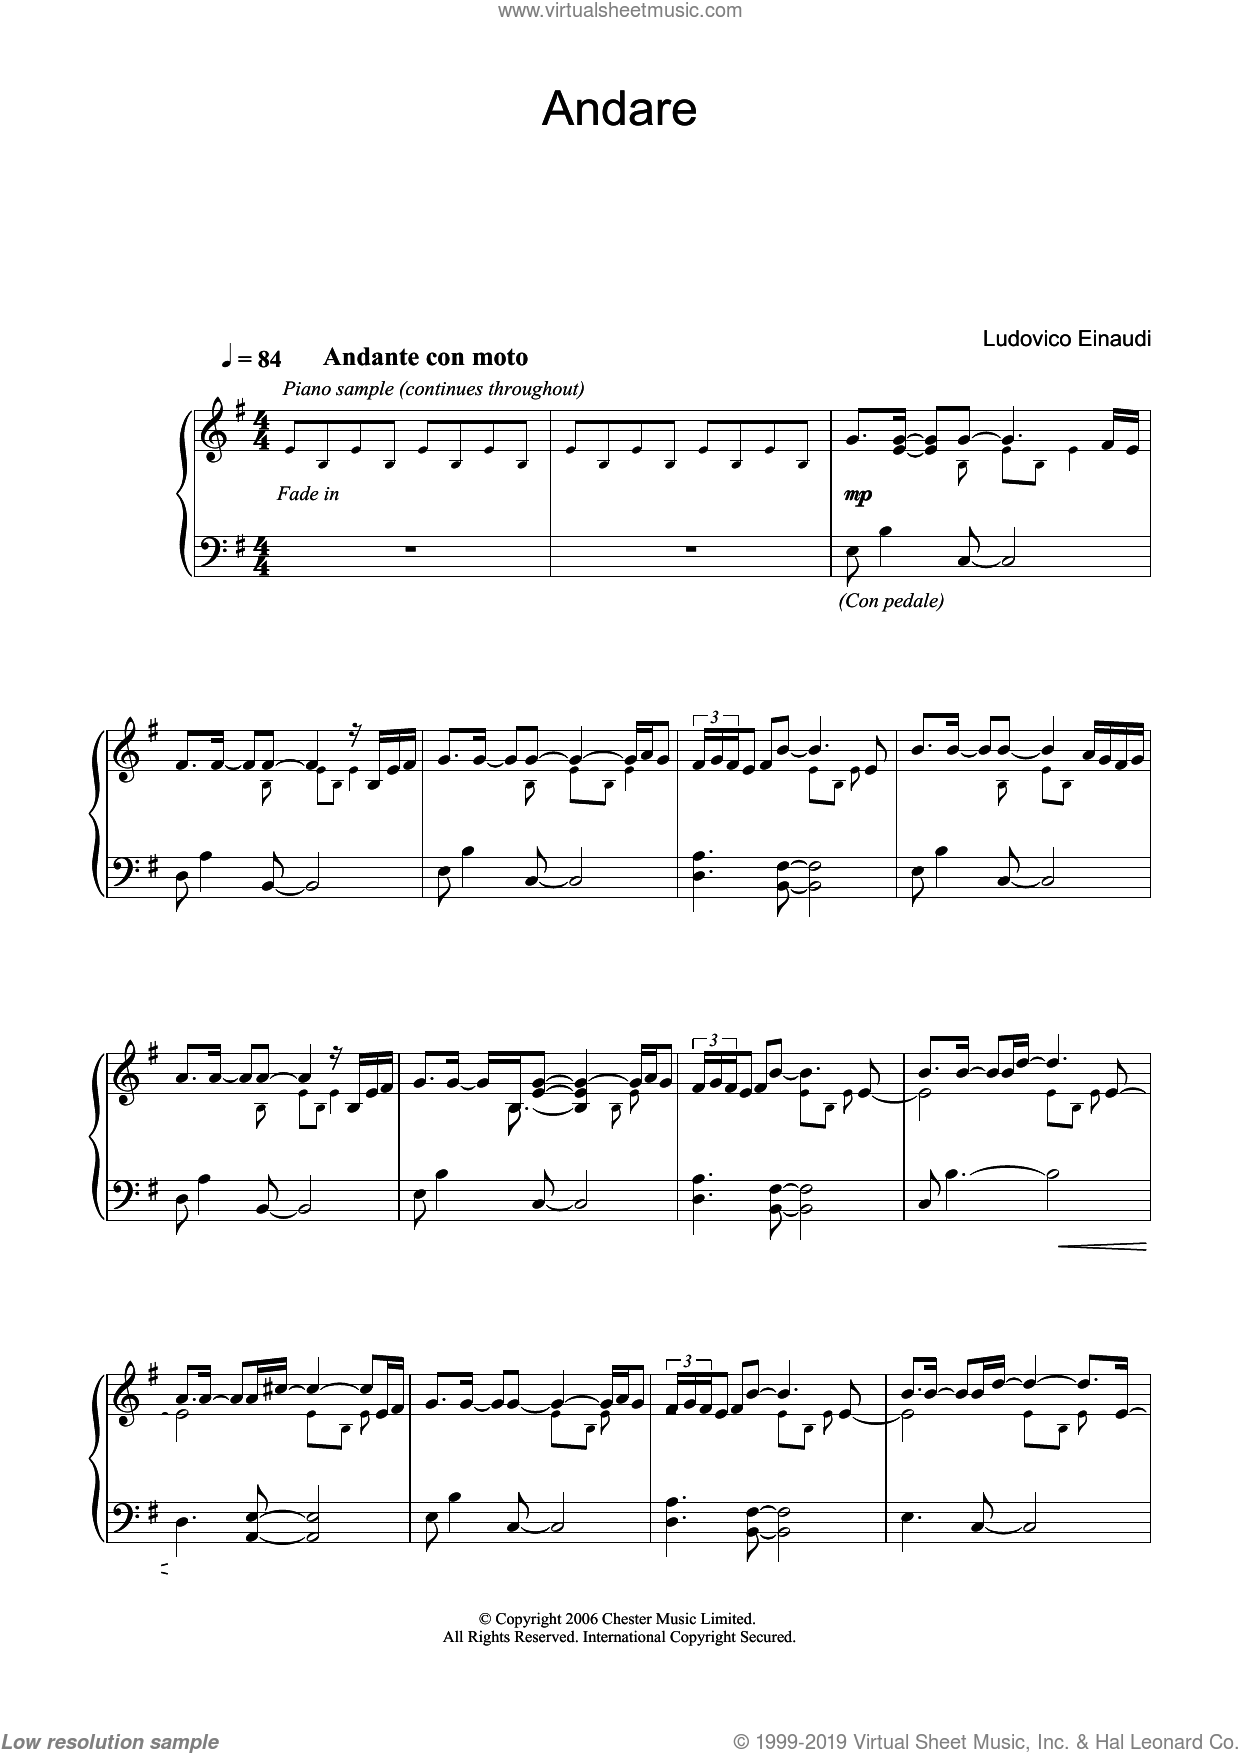 Andare sheet music for piano solo by Ludovico Einaudi